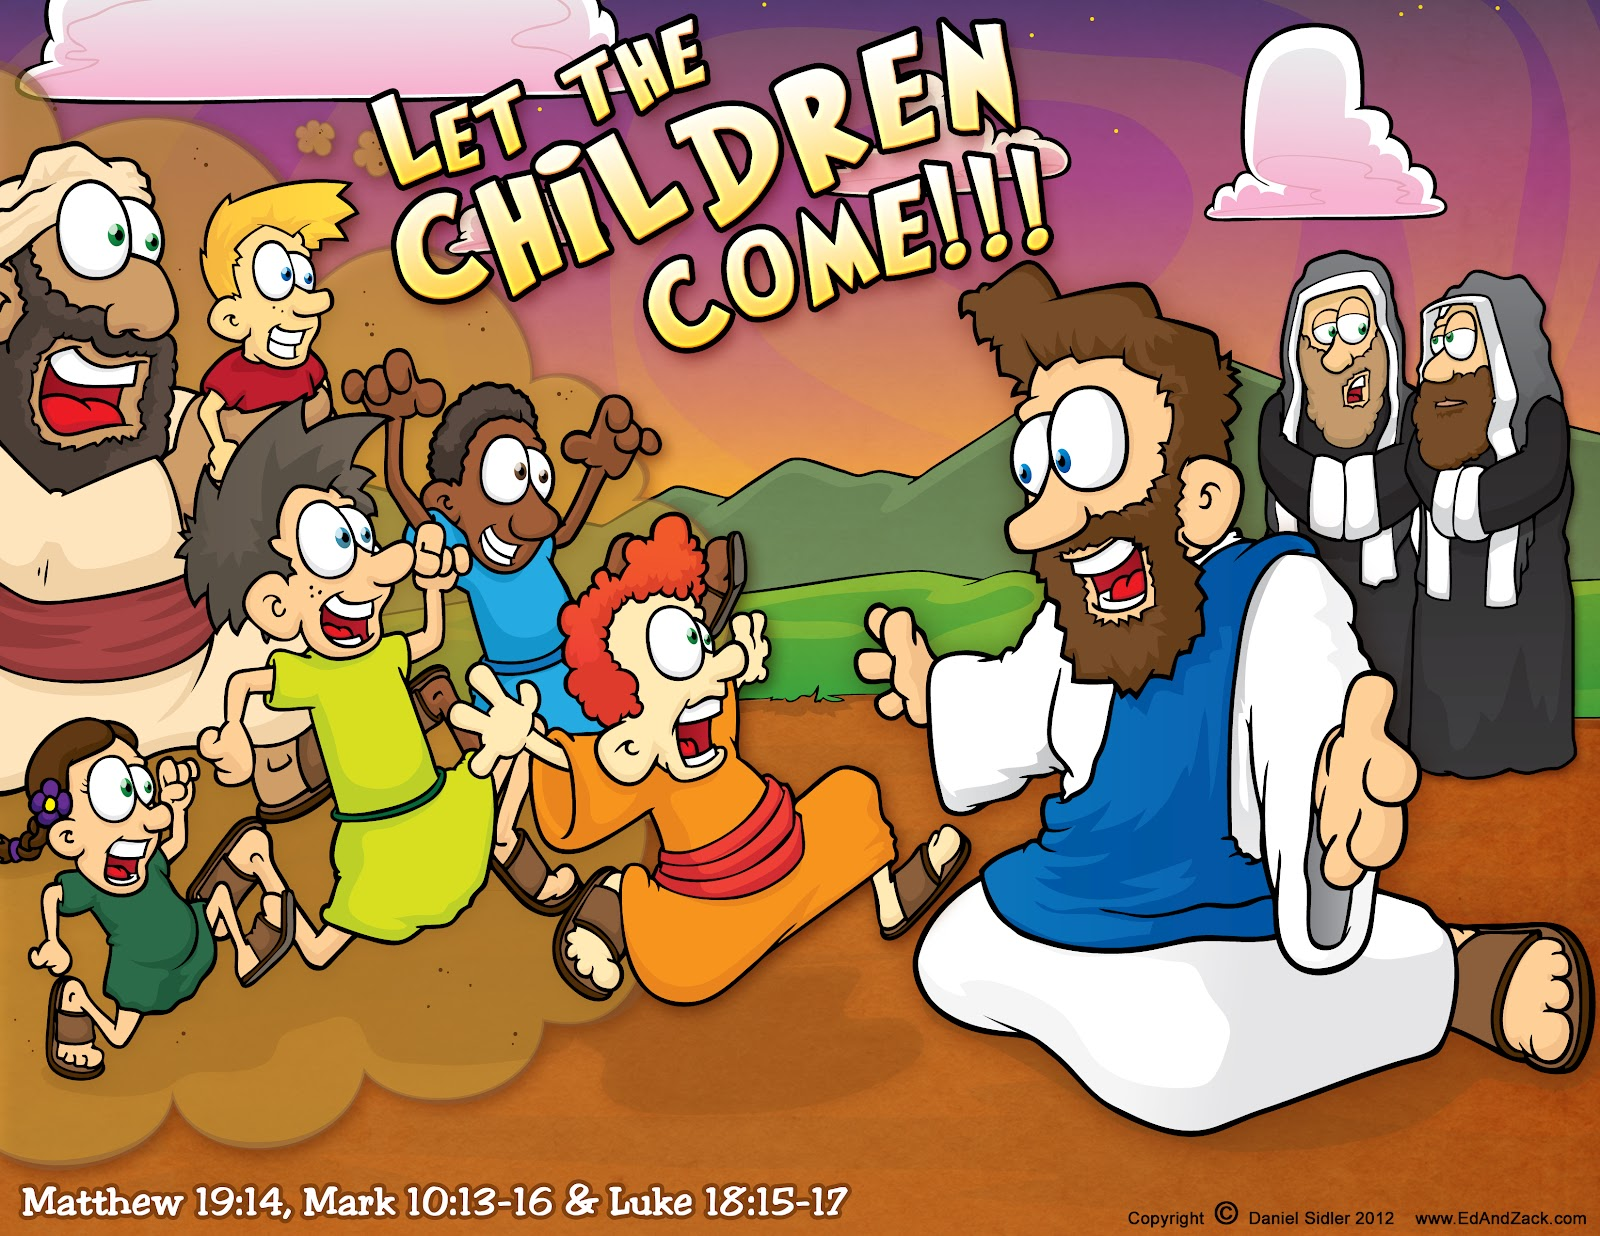 Jesus Cartoon For Kids To Draw Let the children come